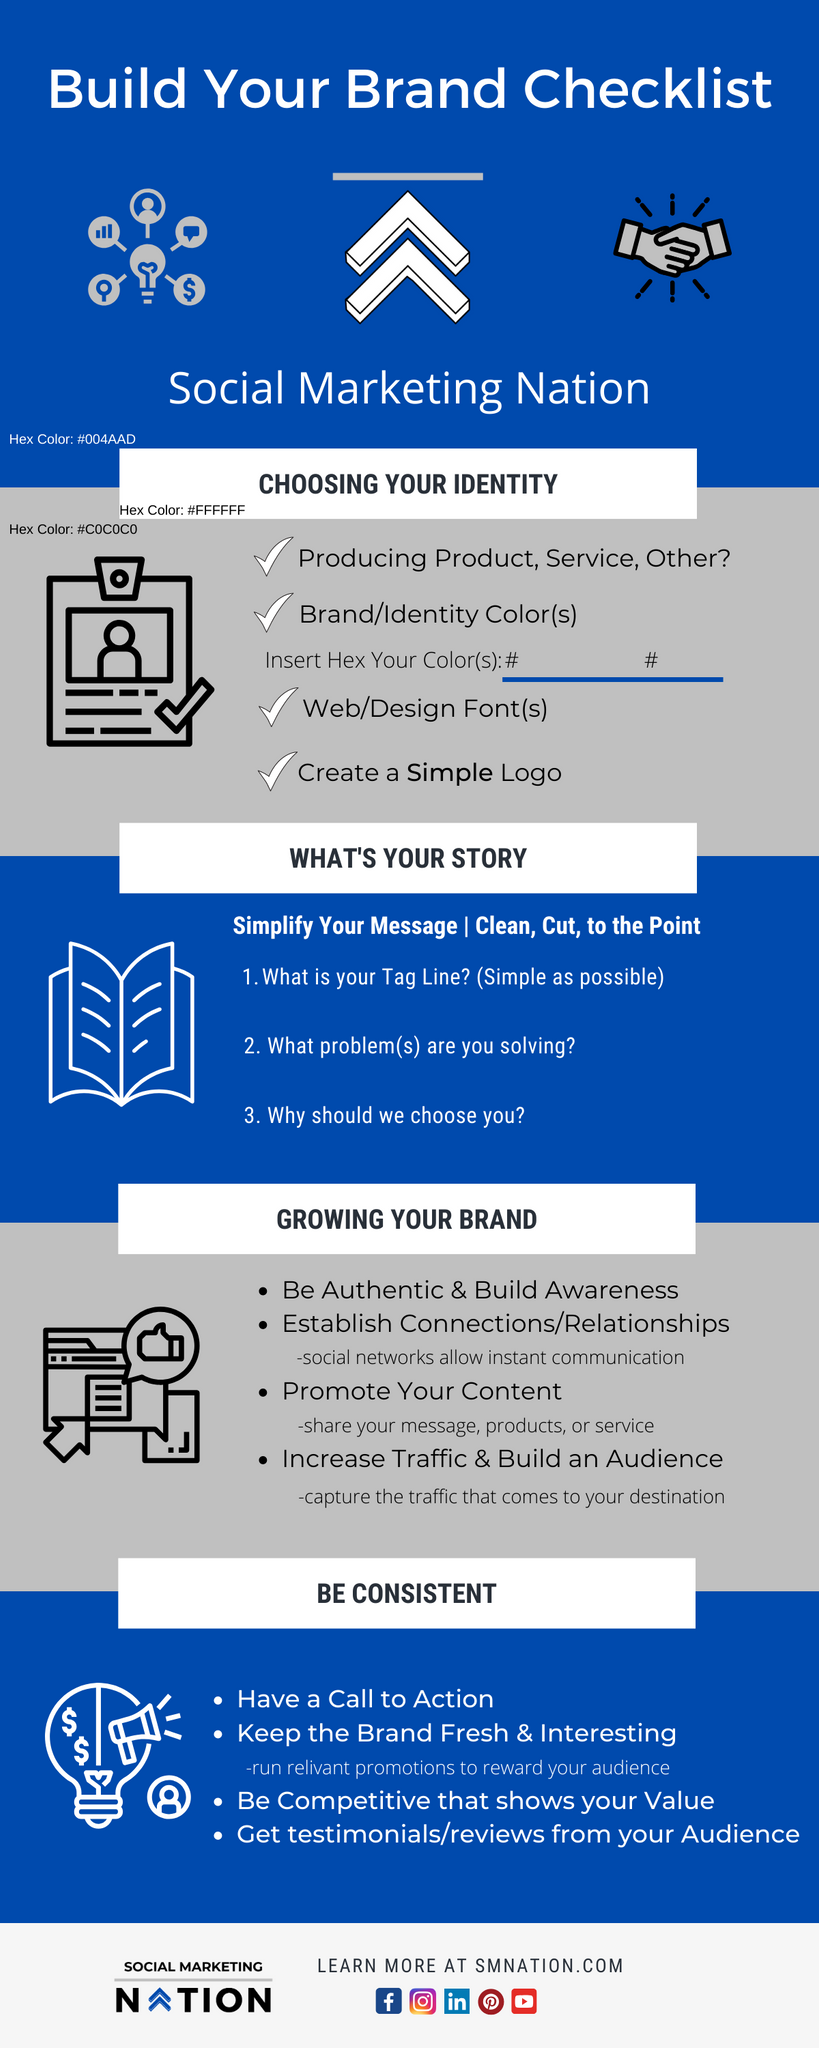 Build your brand checklist from social marketing nation